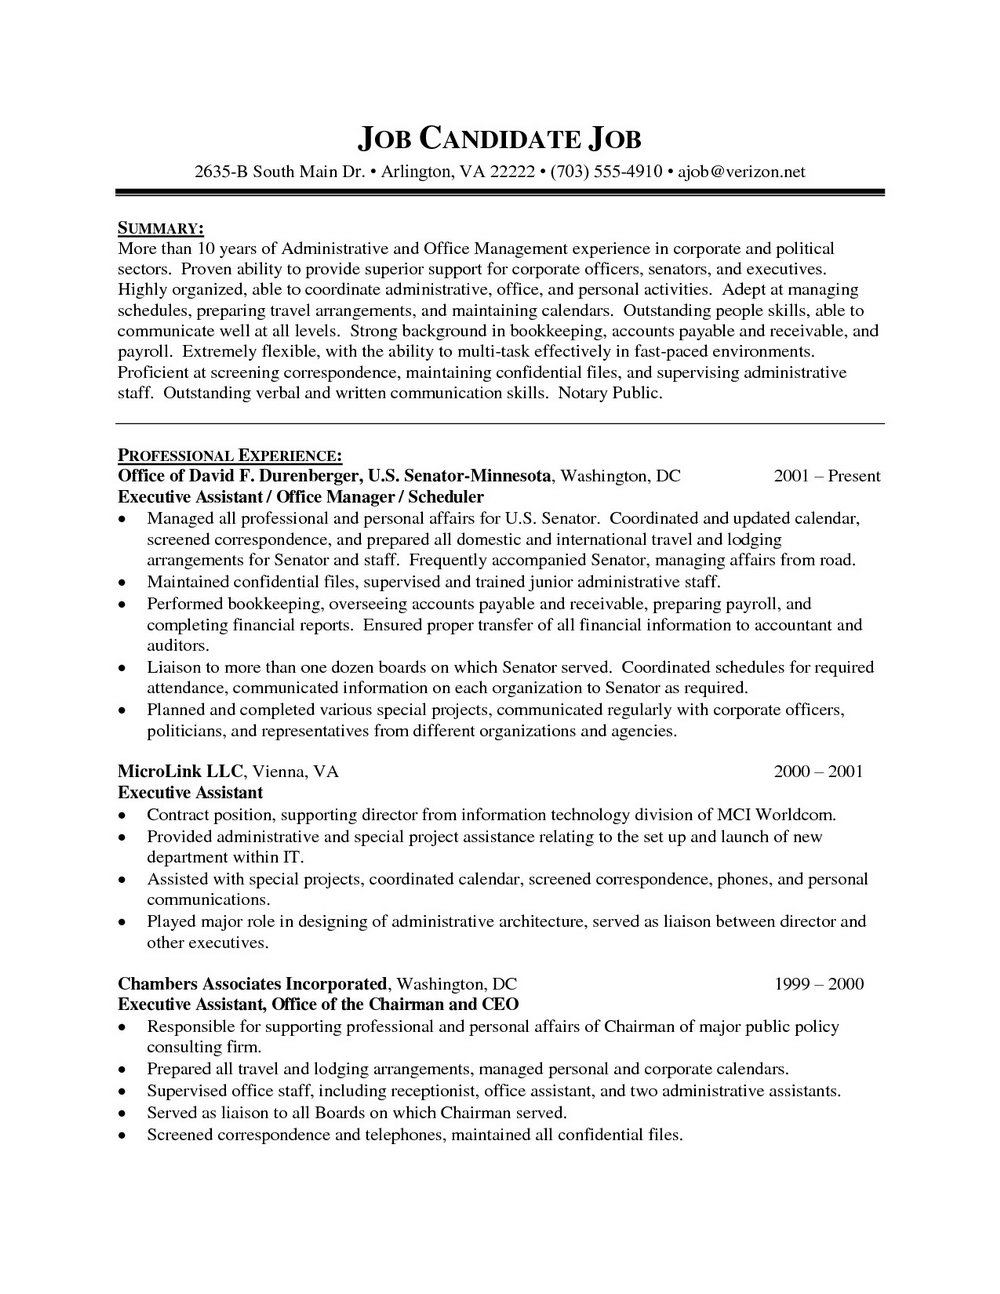 Sample Of Functional Resume For Medical Assistant